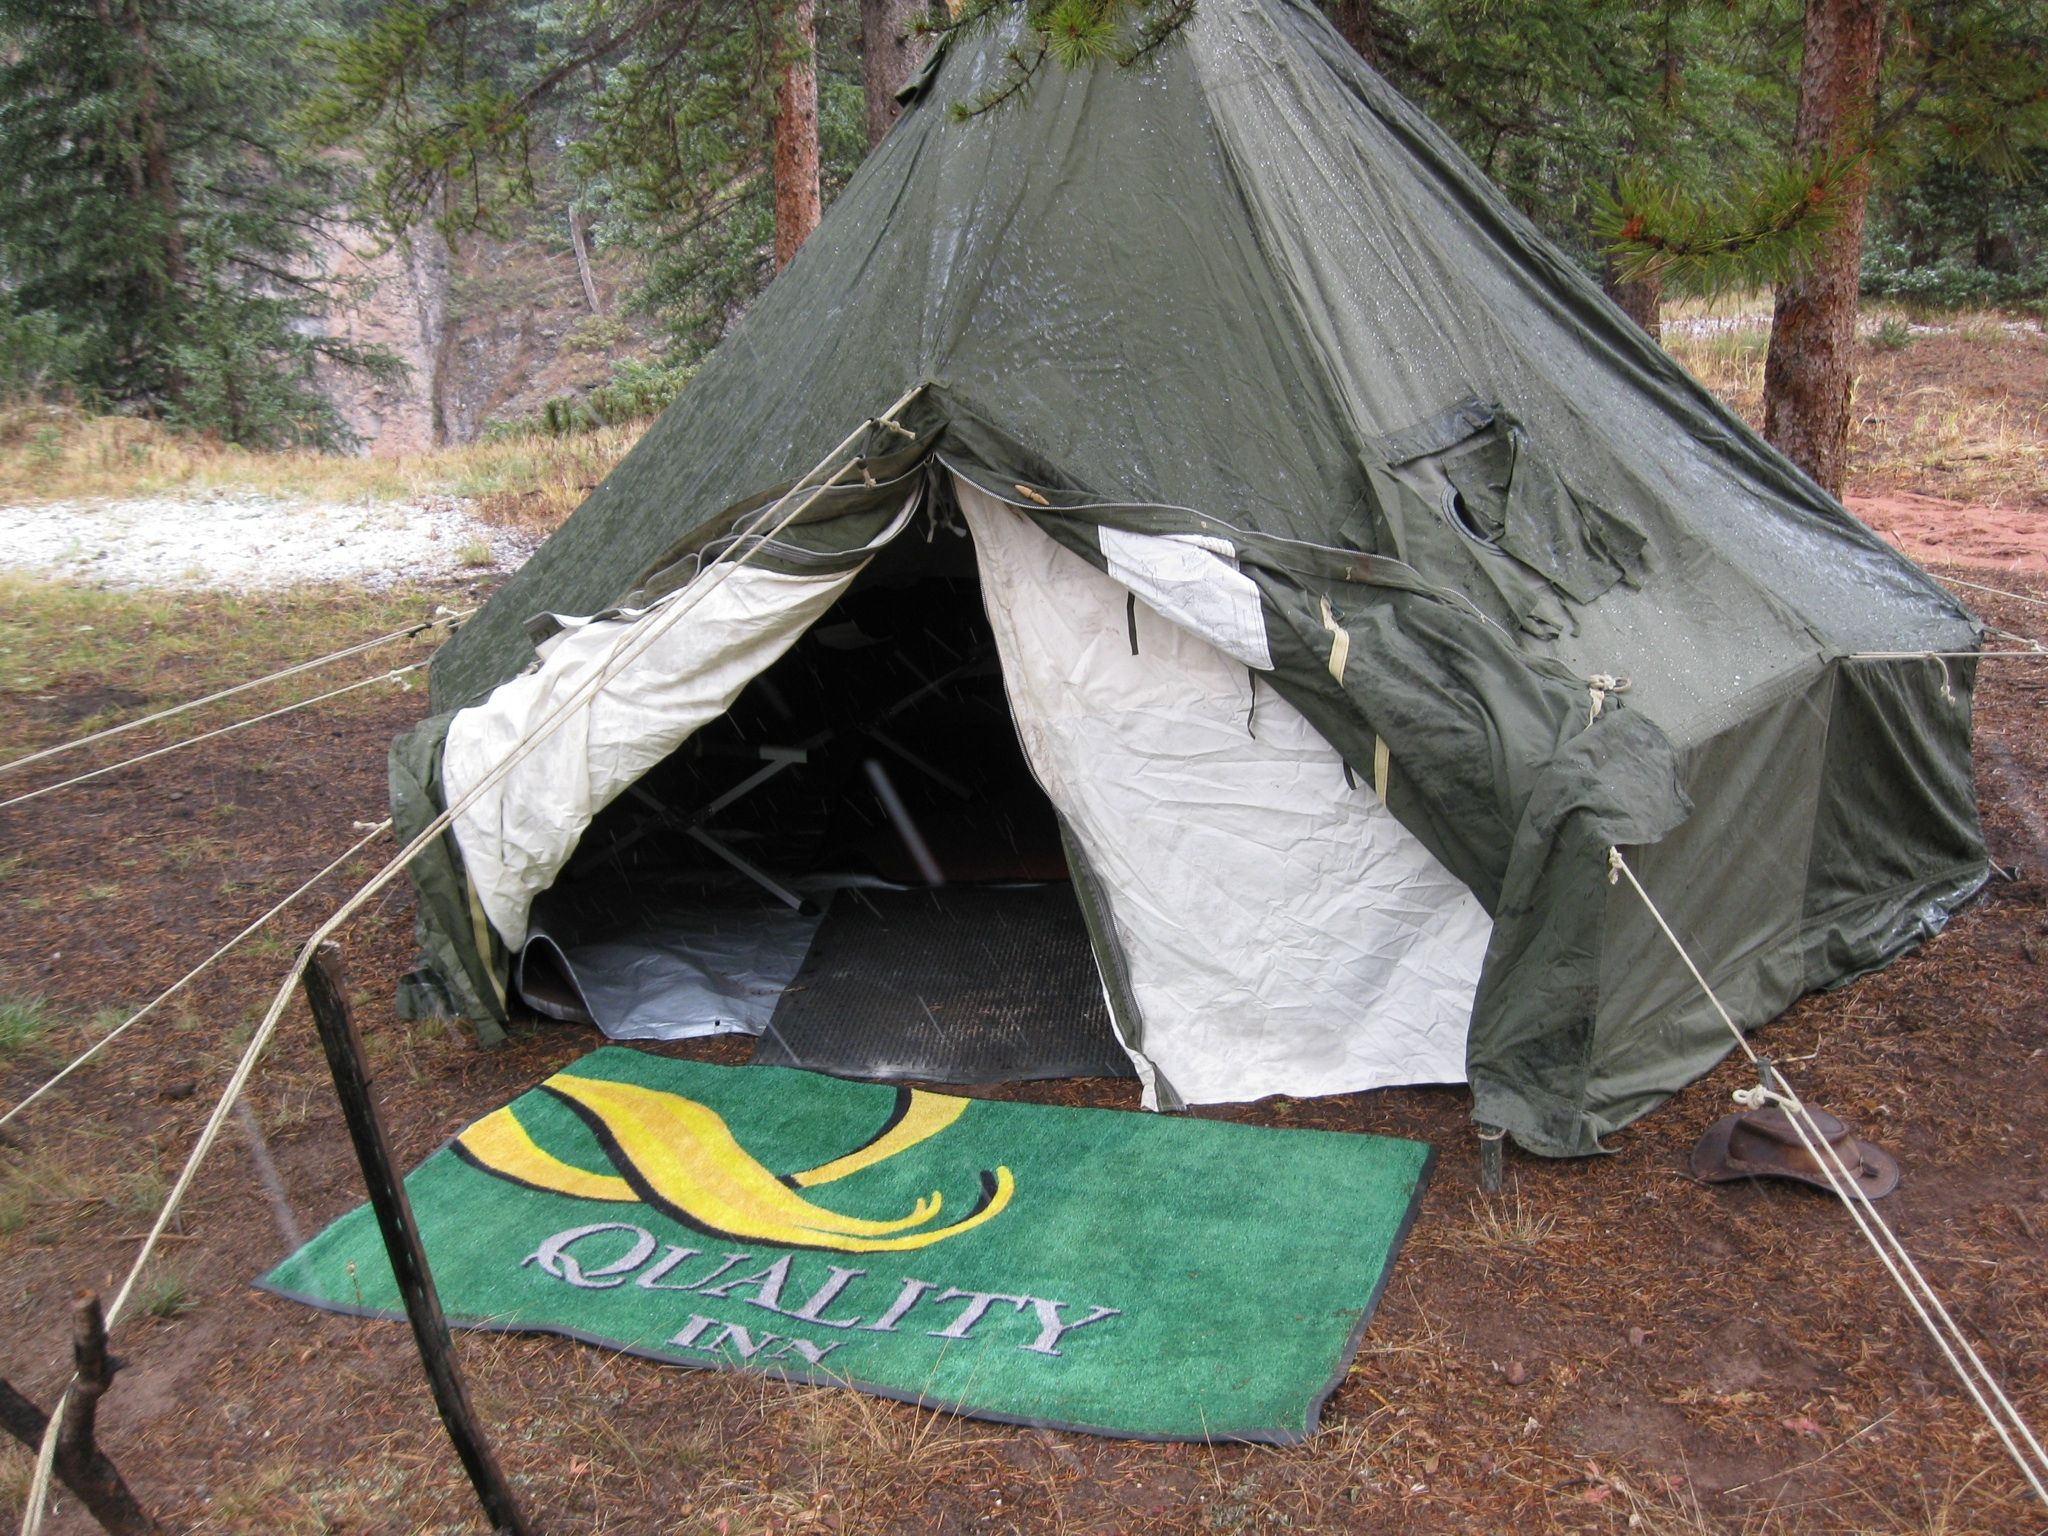 17 Best images about Hot Tent on Pinterest